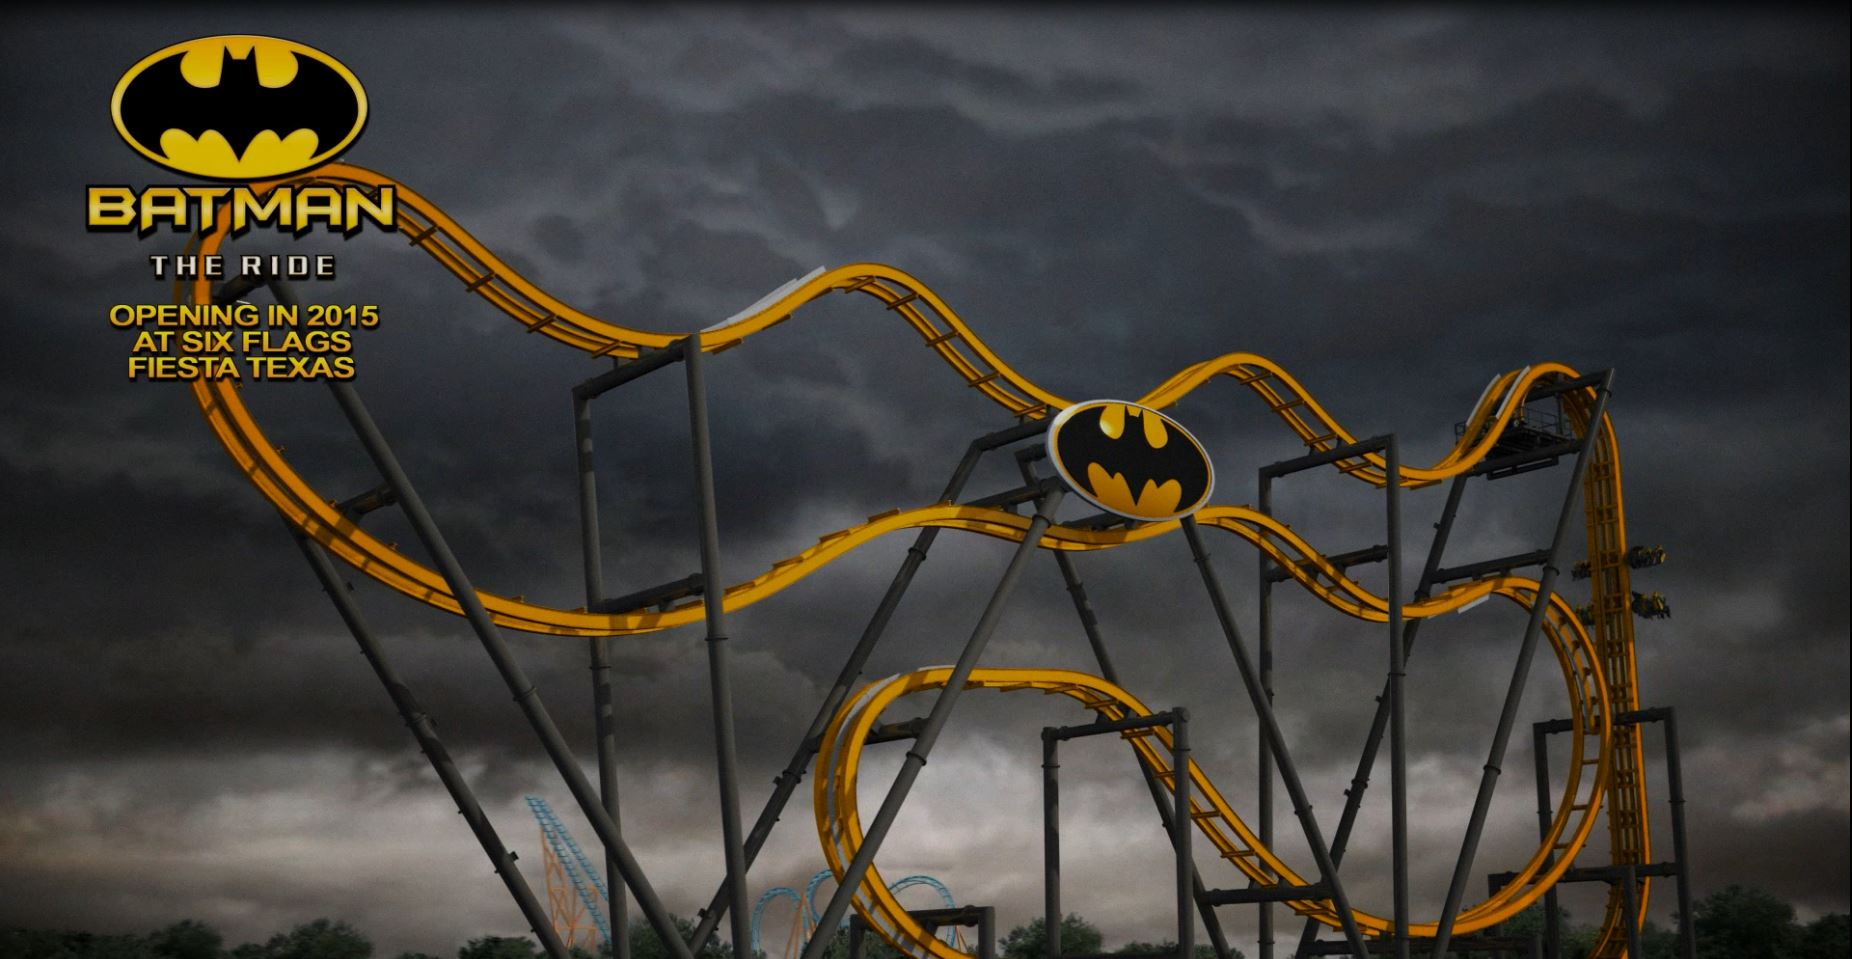 Batman Ride At Fiesta Texas Described As First Of Its Kind